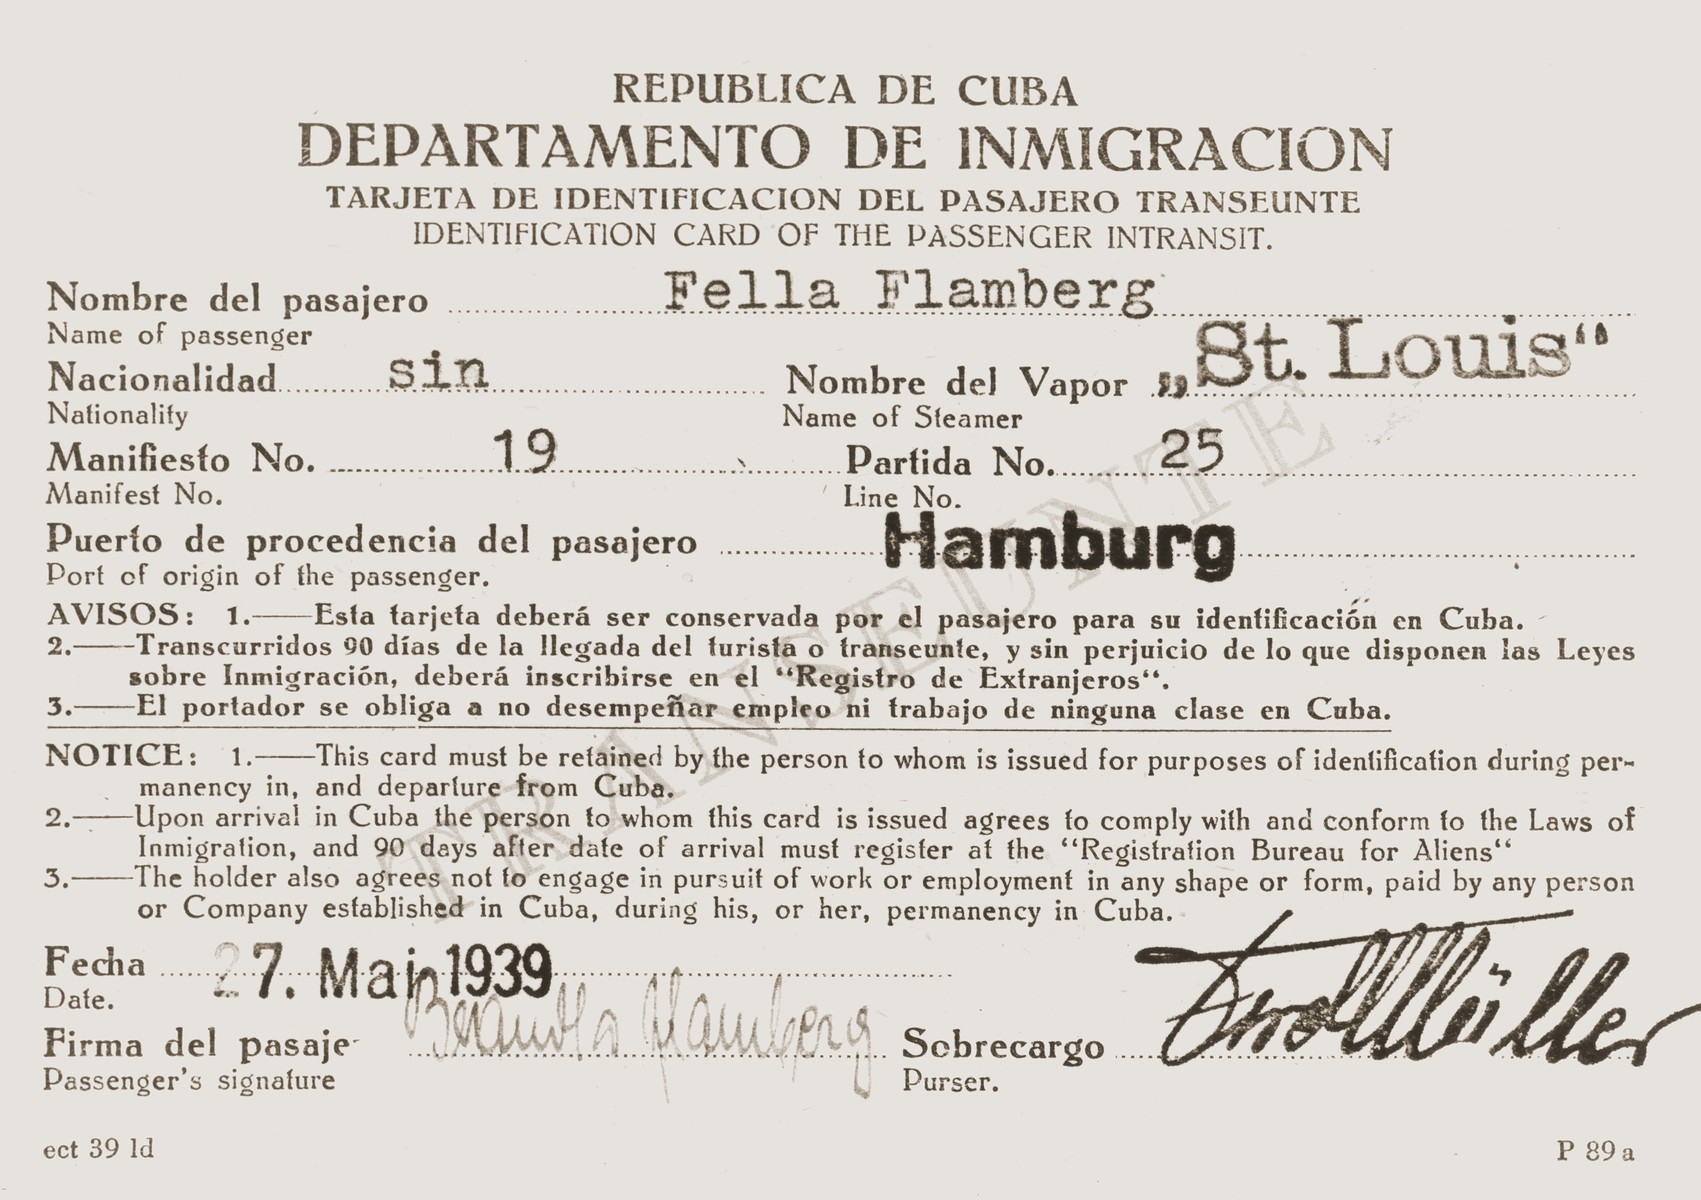 Immigration identification card issued by the Cuban government to St. Louis passenger Fella Flamberg in advance of her voyage.